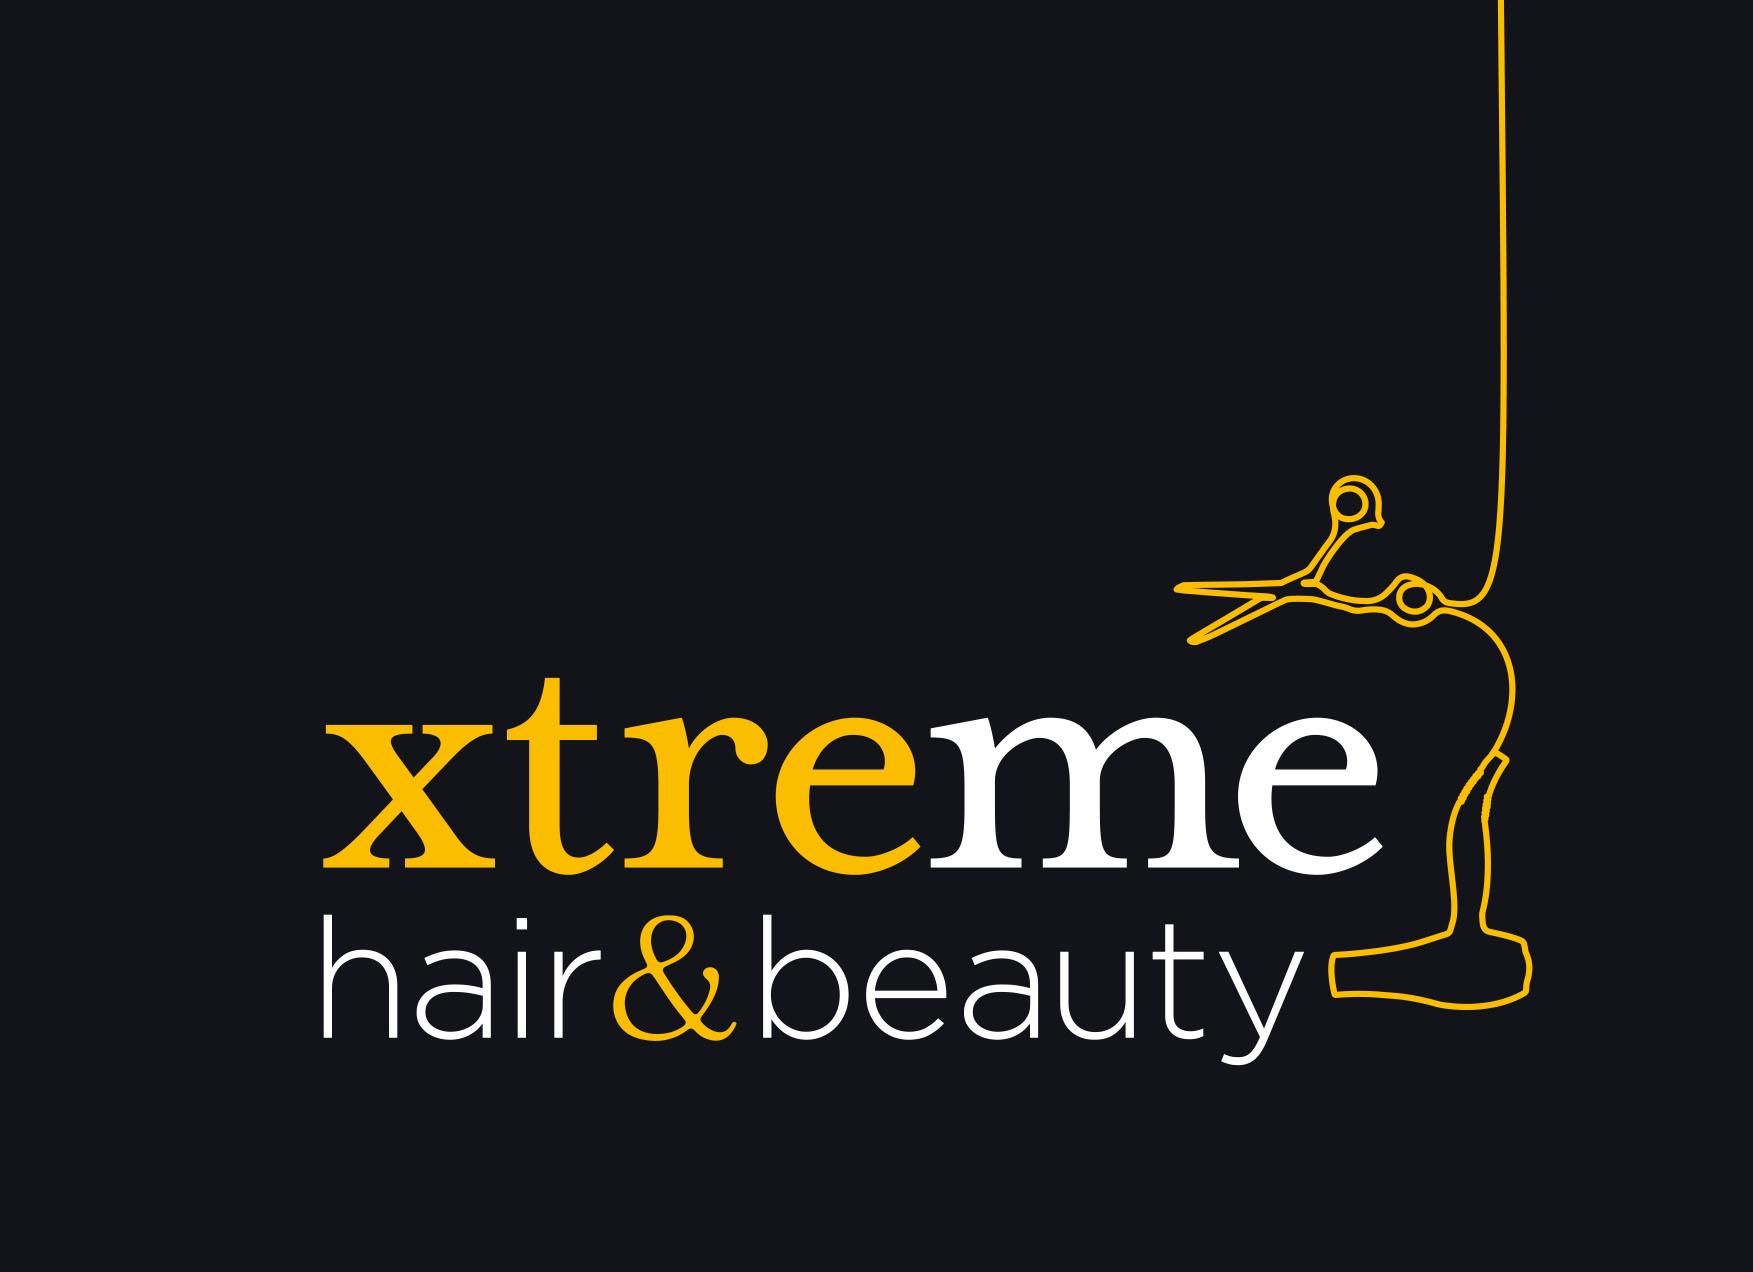 Xtreme Hair & Beauty logo